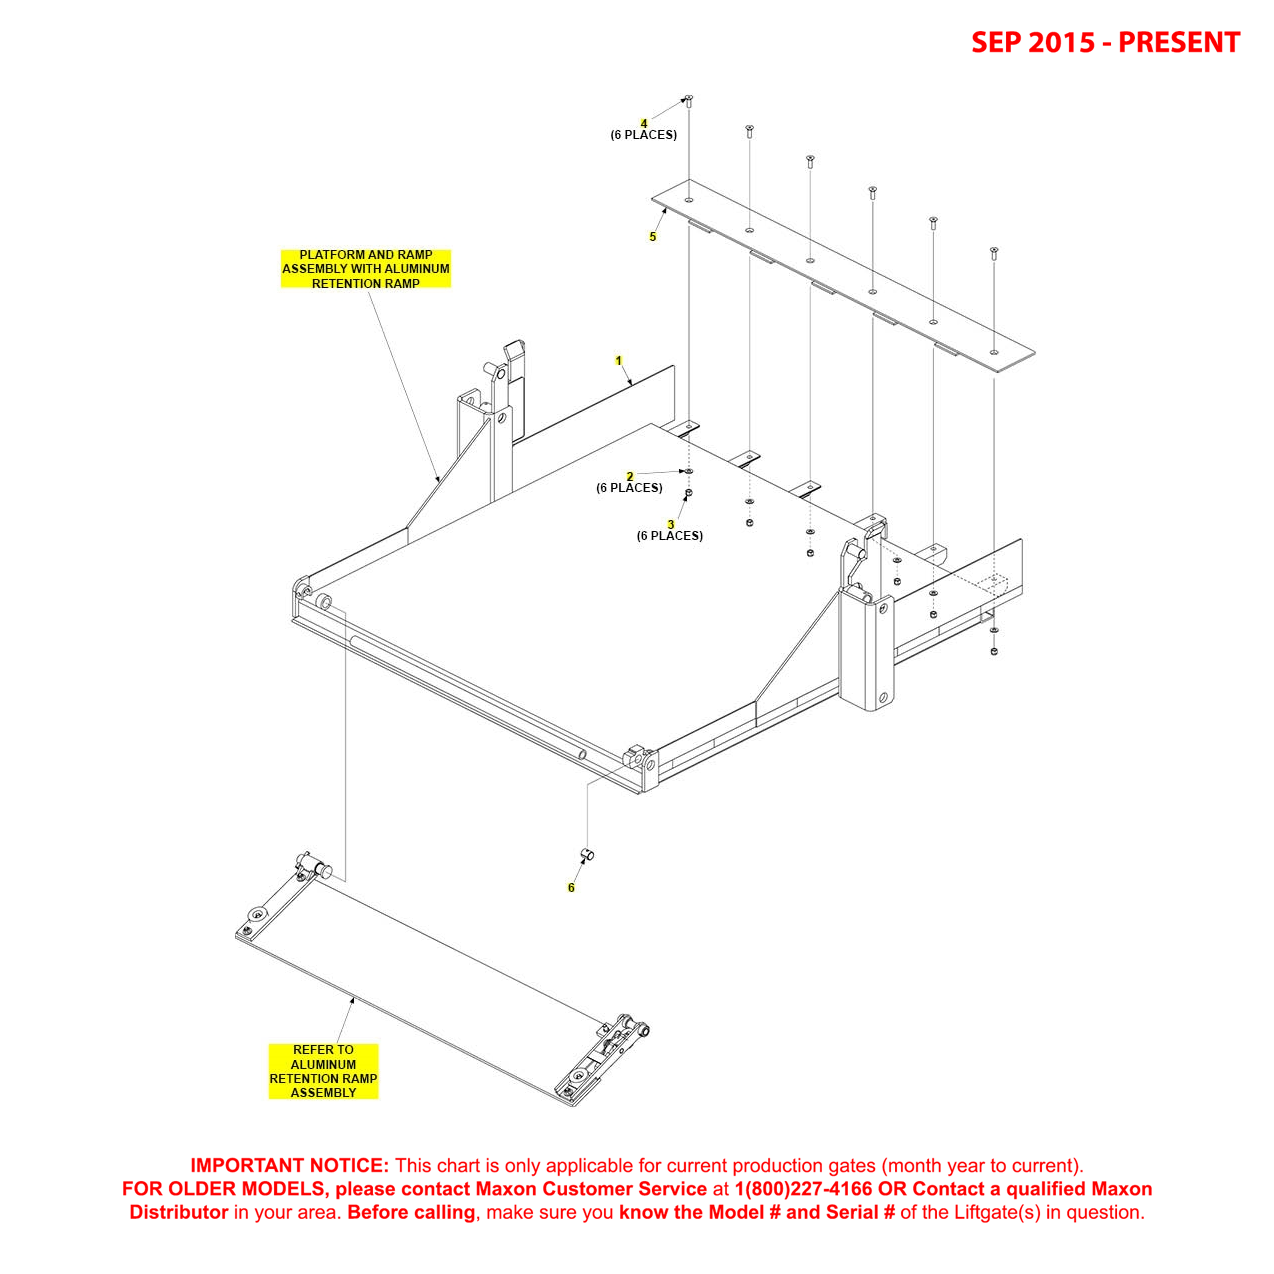 RA (Sep 2015 - Present) 48 And 60 Inch Platform And Aluminum Retention Ramp Assembly